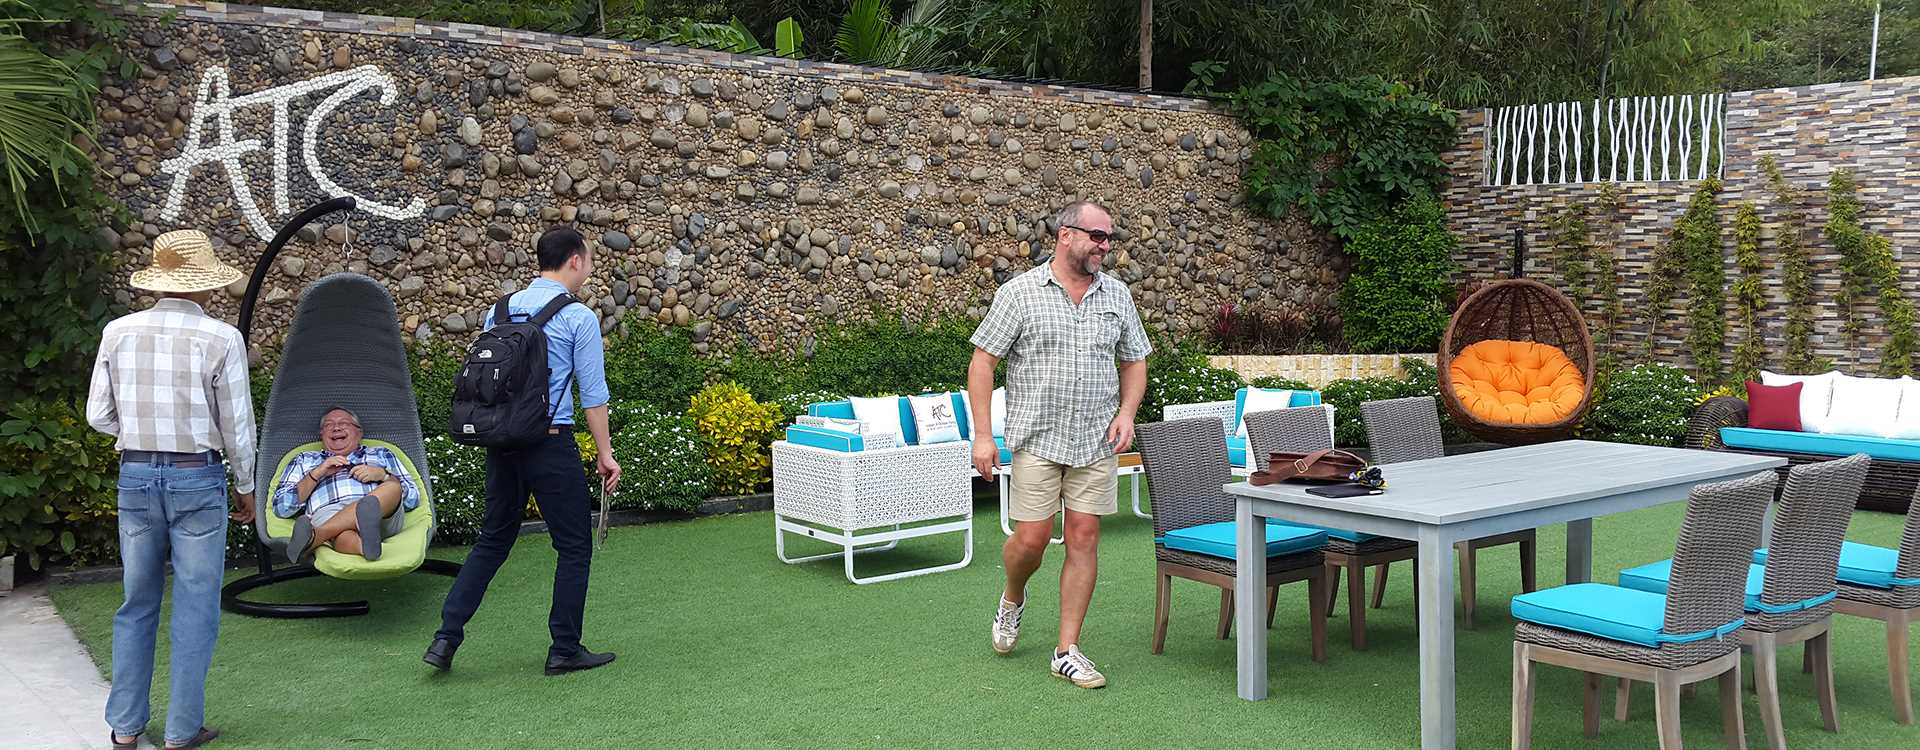 ATC Patio Furniture Manufacturer Customers Visiting